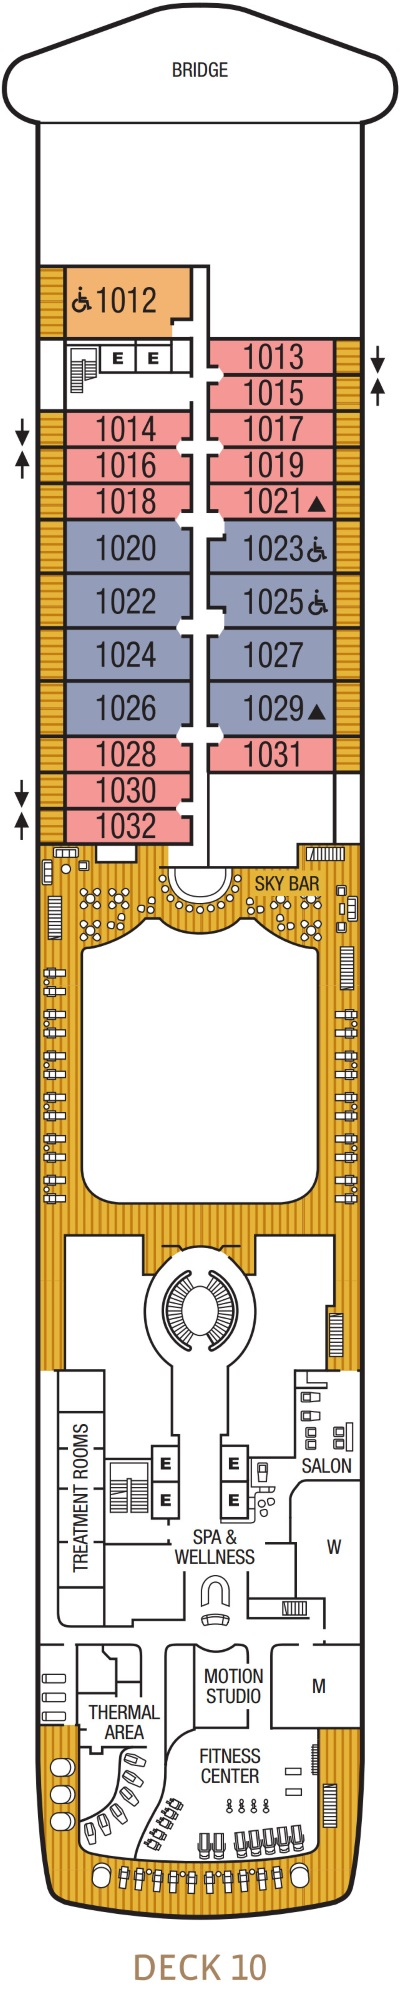 Seabourn Encore Deck 10 layout